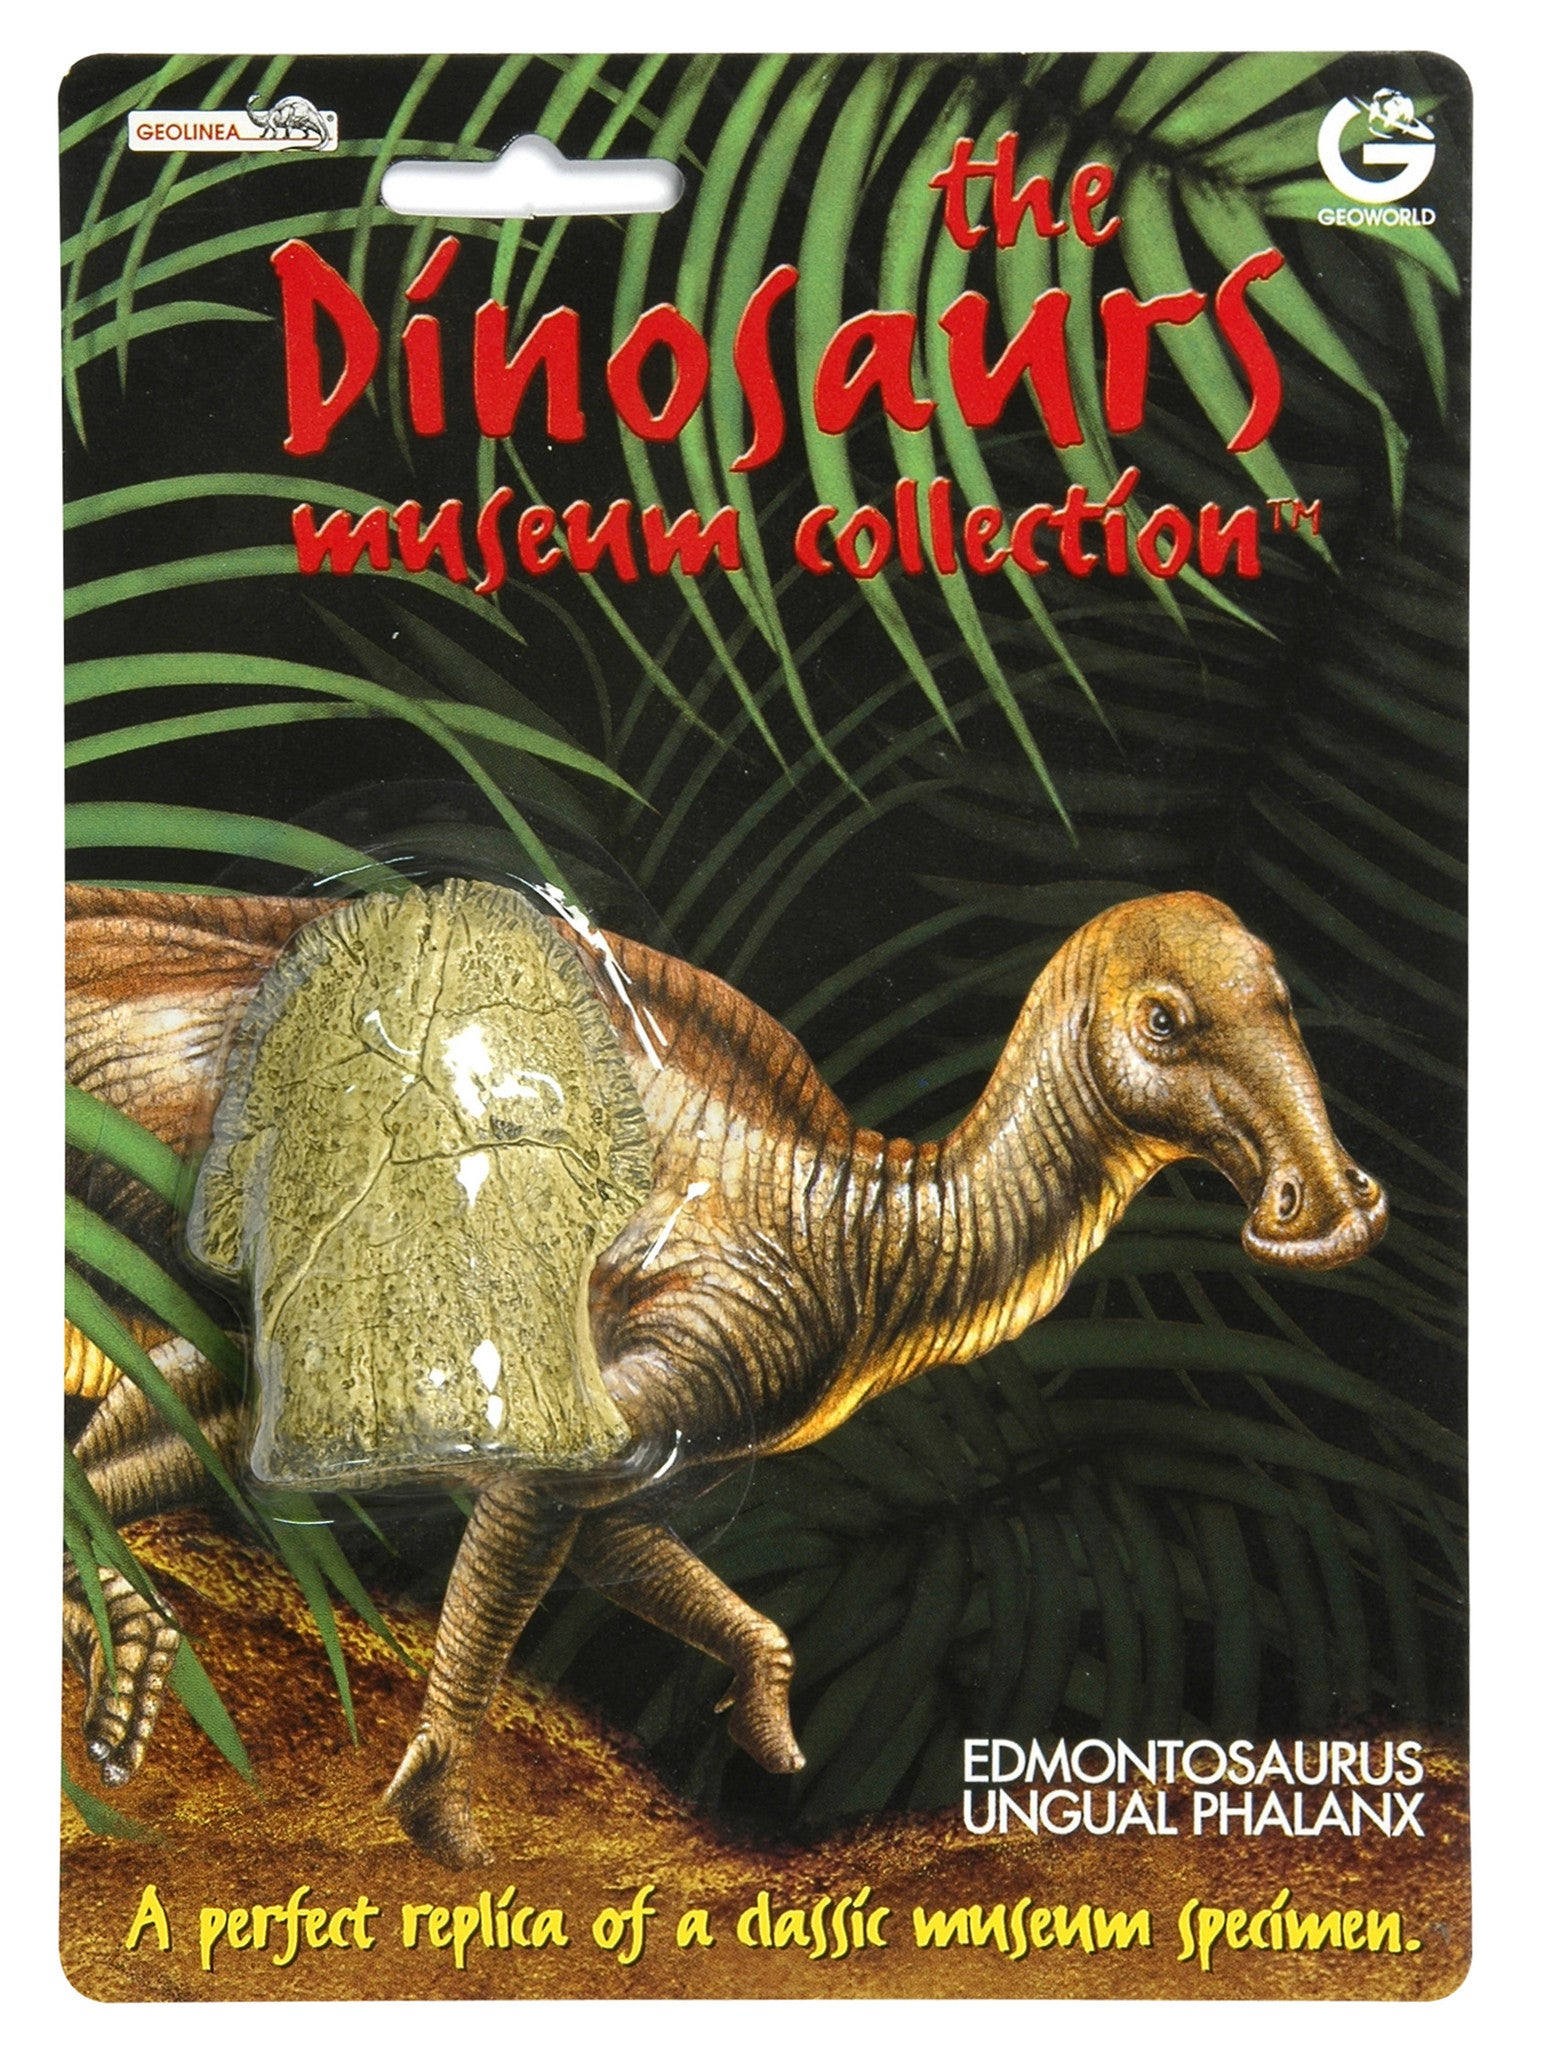 Edmontosaurus Ungual Phalanx Replica - Dinosaur Perfect Replica by Geoworld - Off The Wall Toys and Gifts